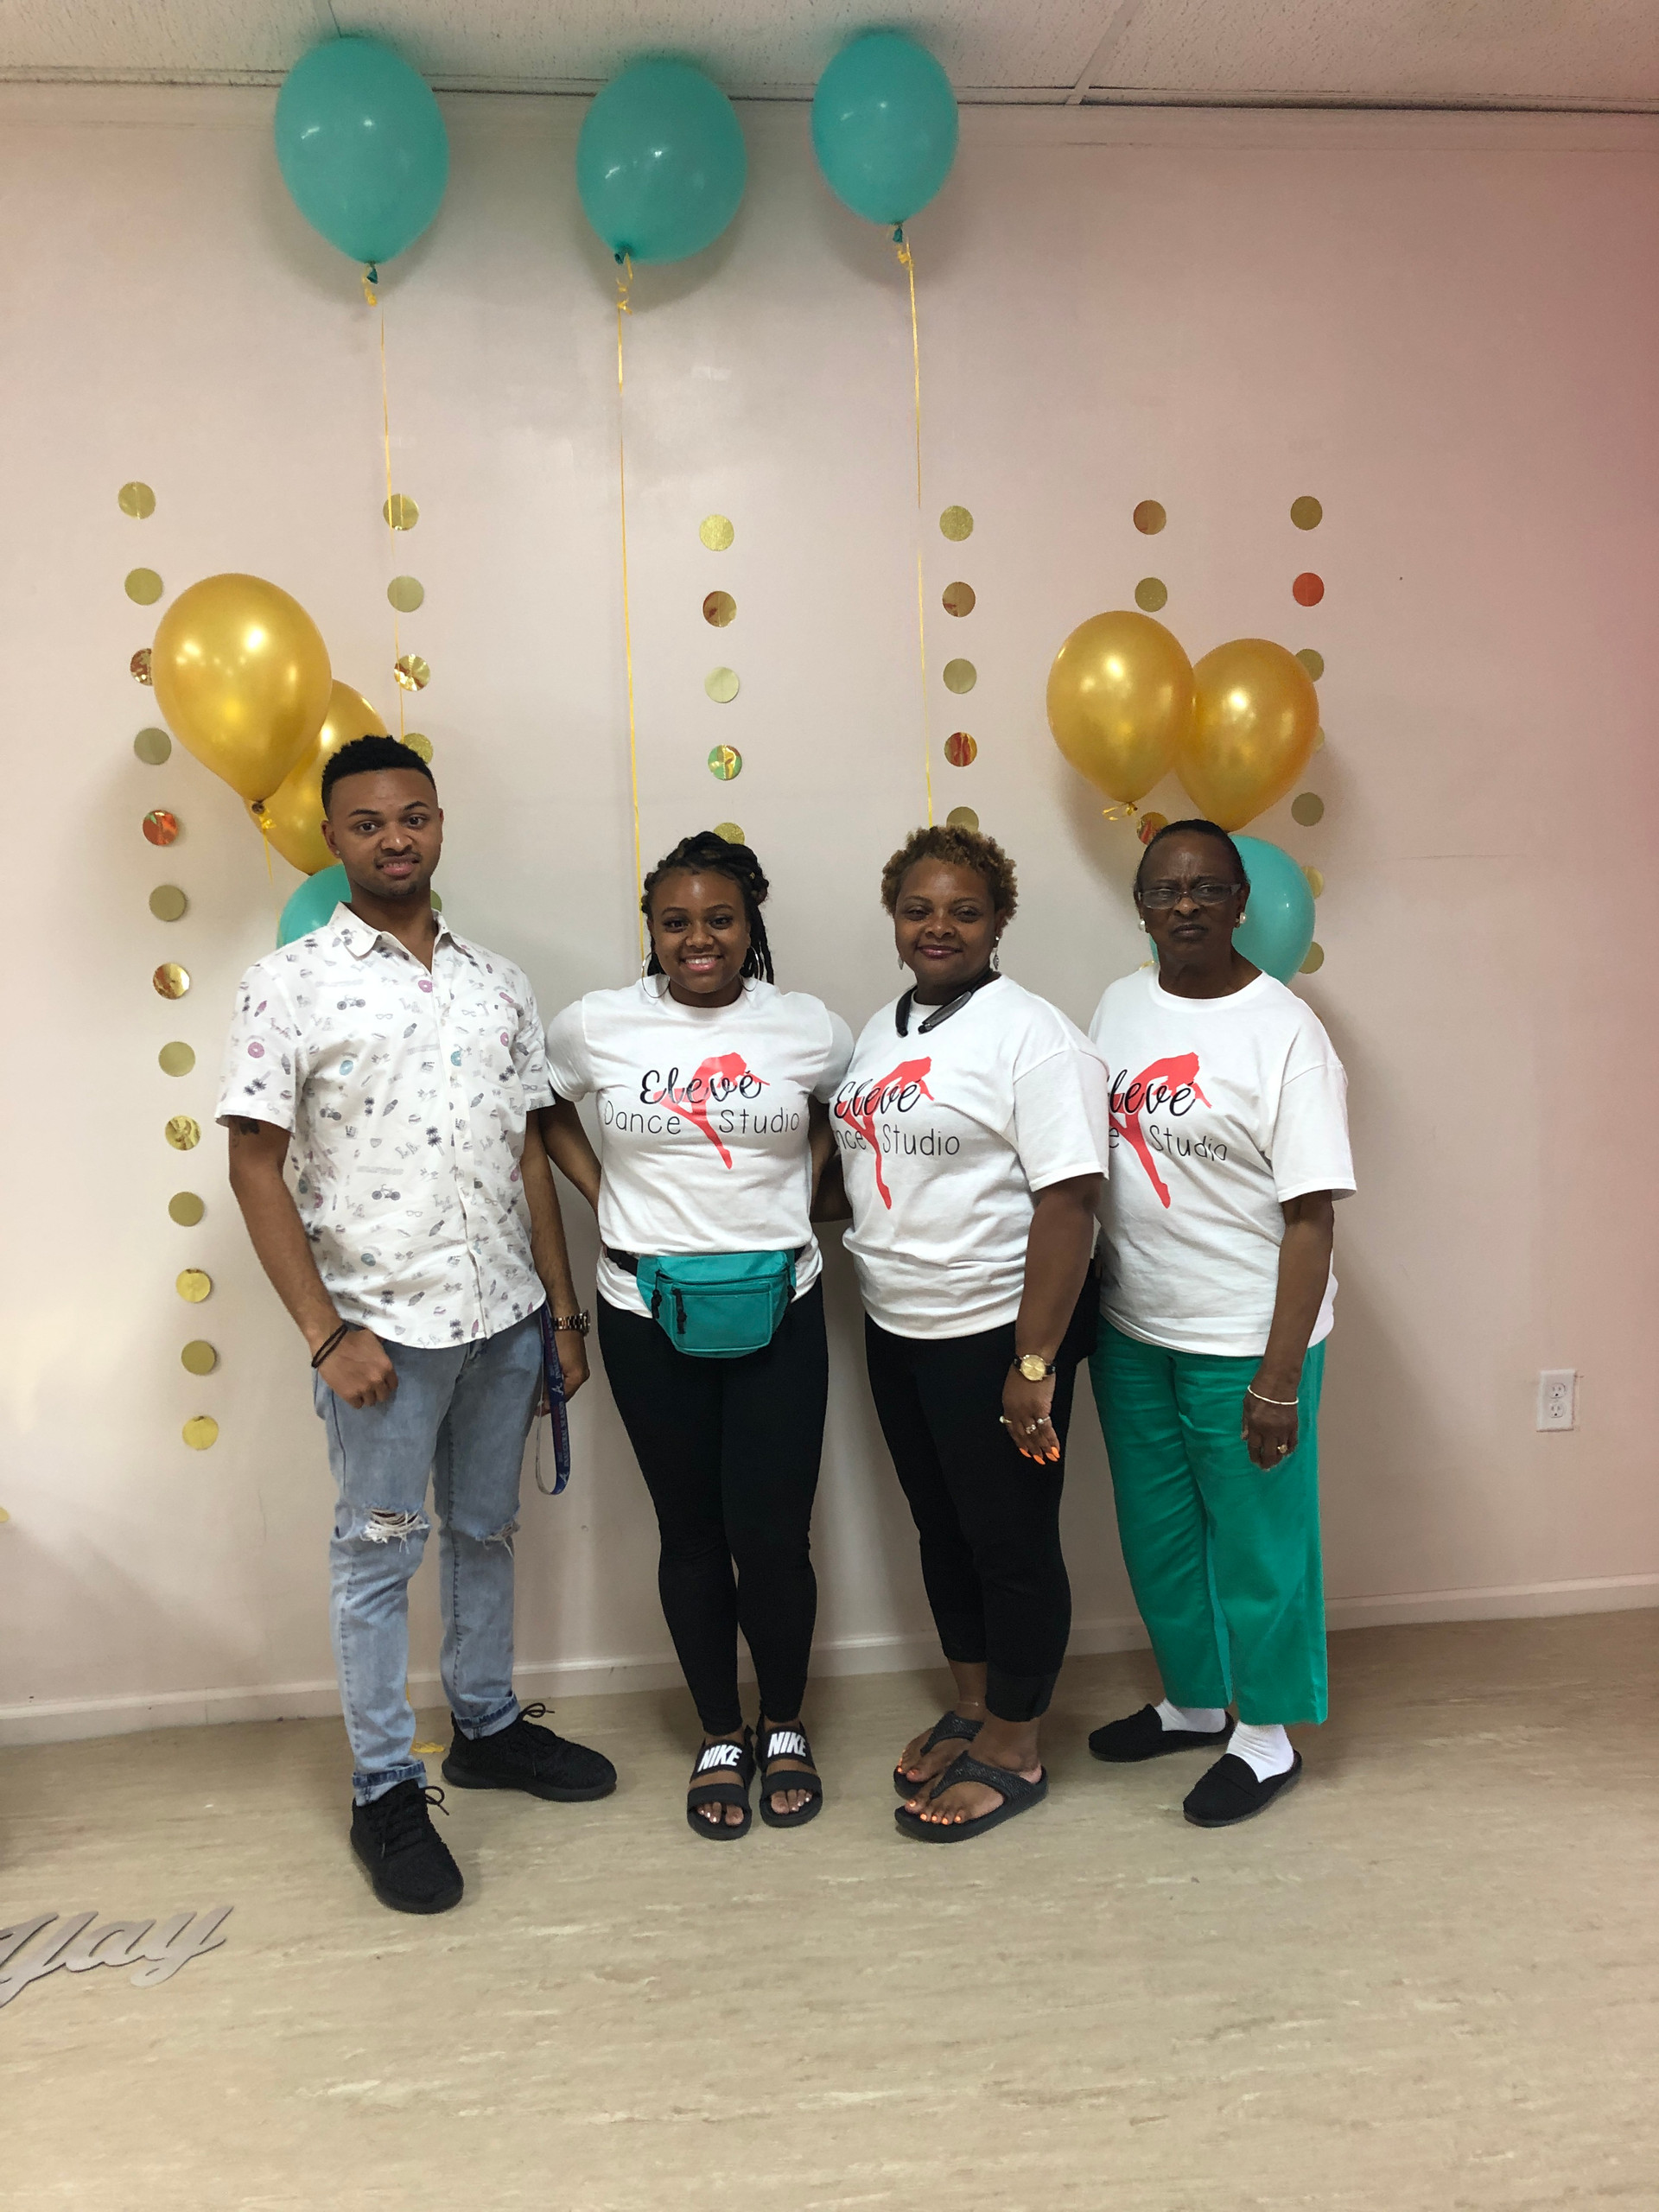 Ms. Jelinda and her family on grand opening